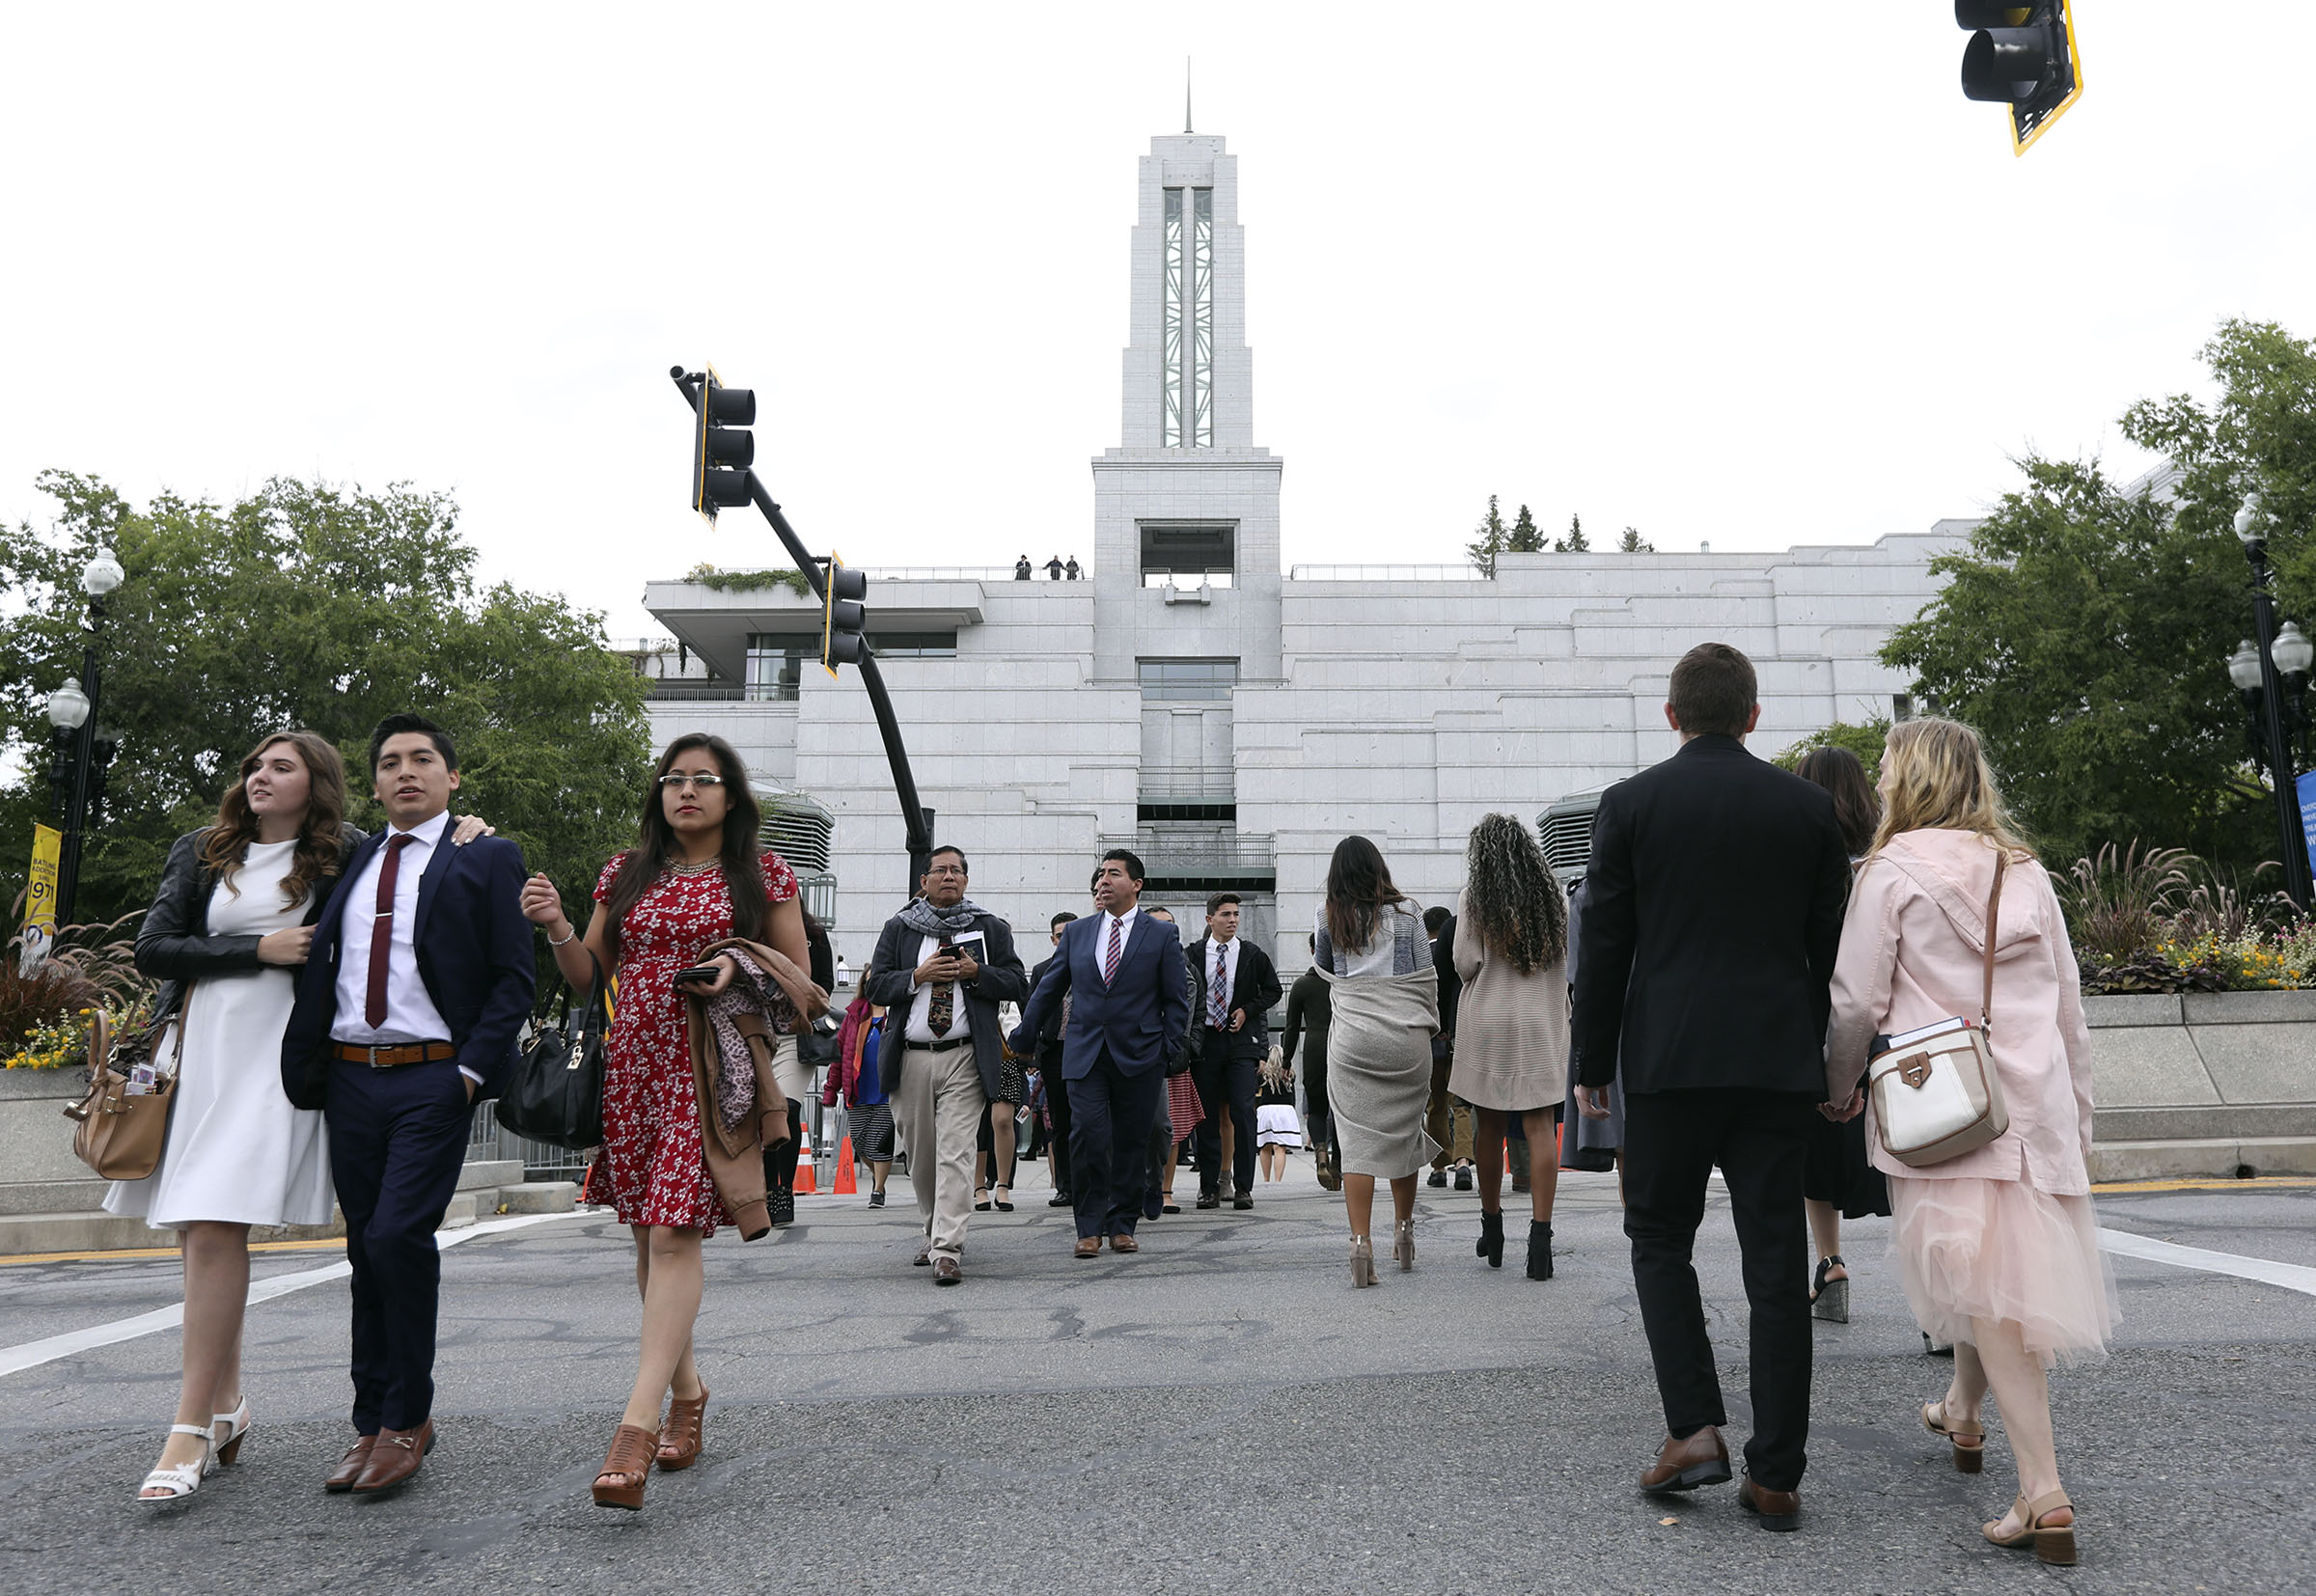 People walk between Temple Square and the Conference Center between sessions of the 188th Semiannual General Conference of The Church of Jesus Christ of Latter-day Saints in downtown Salt Lake City on Sunday, Oct. 7, 2018.